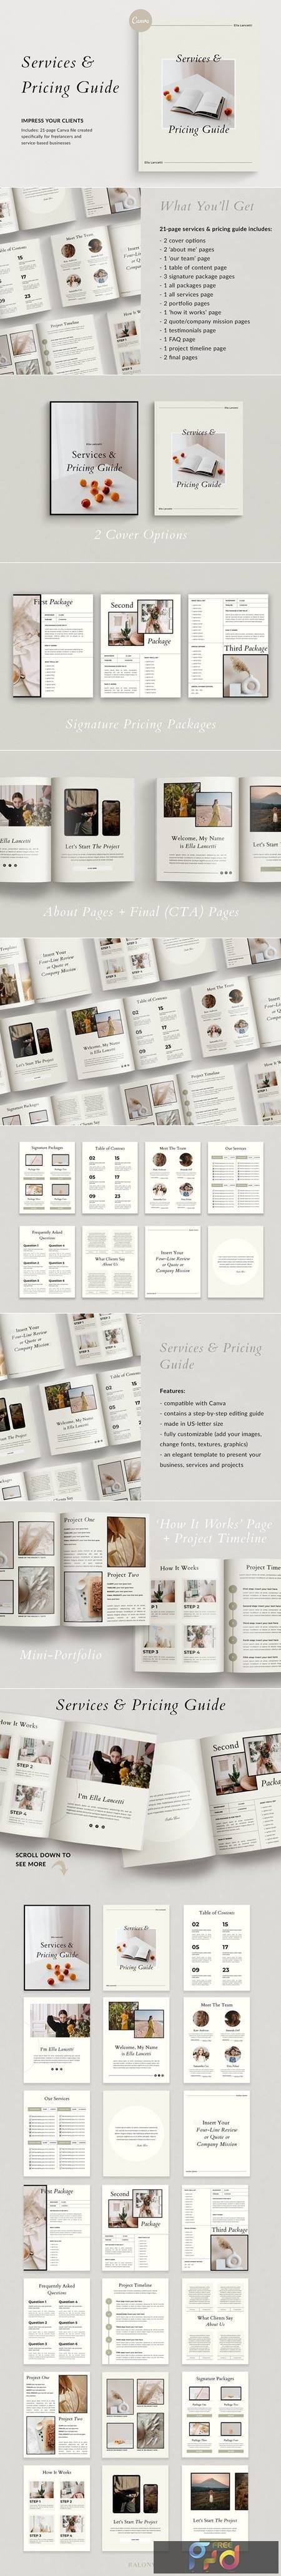 Services & Pricing Guide - Canva 4985290 1